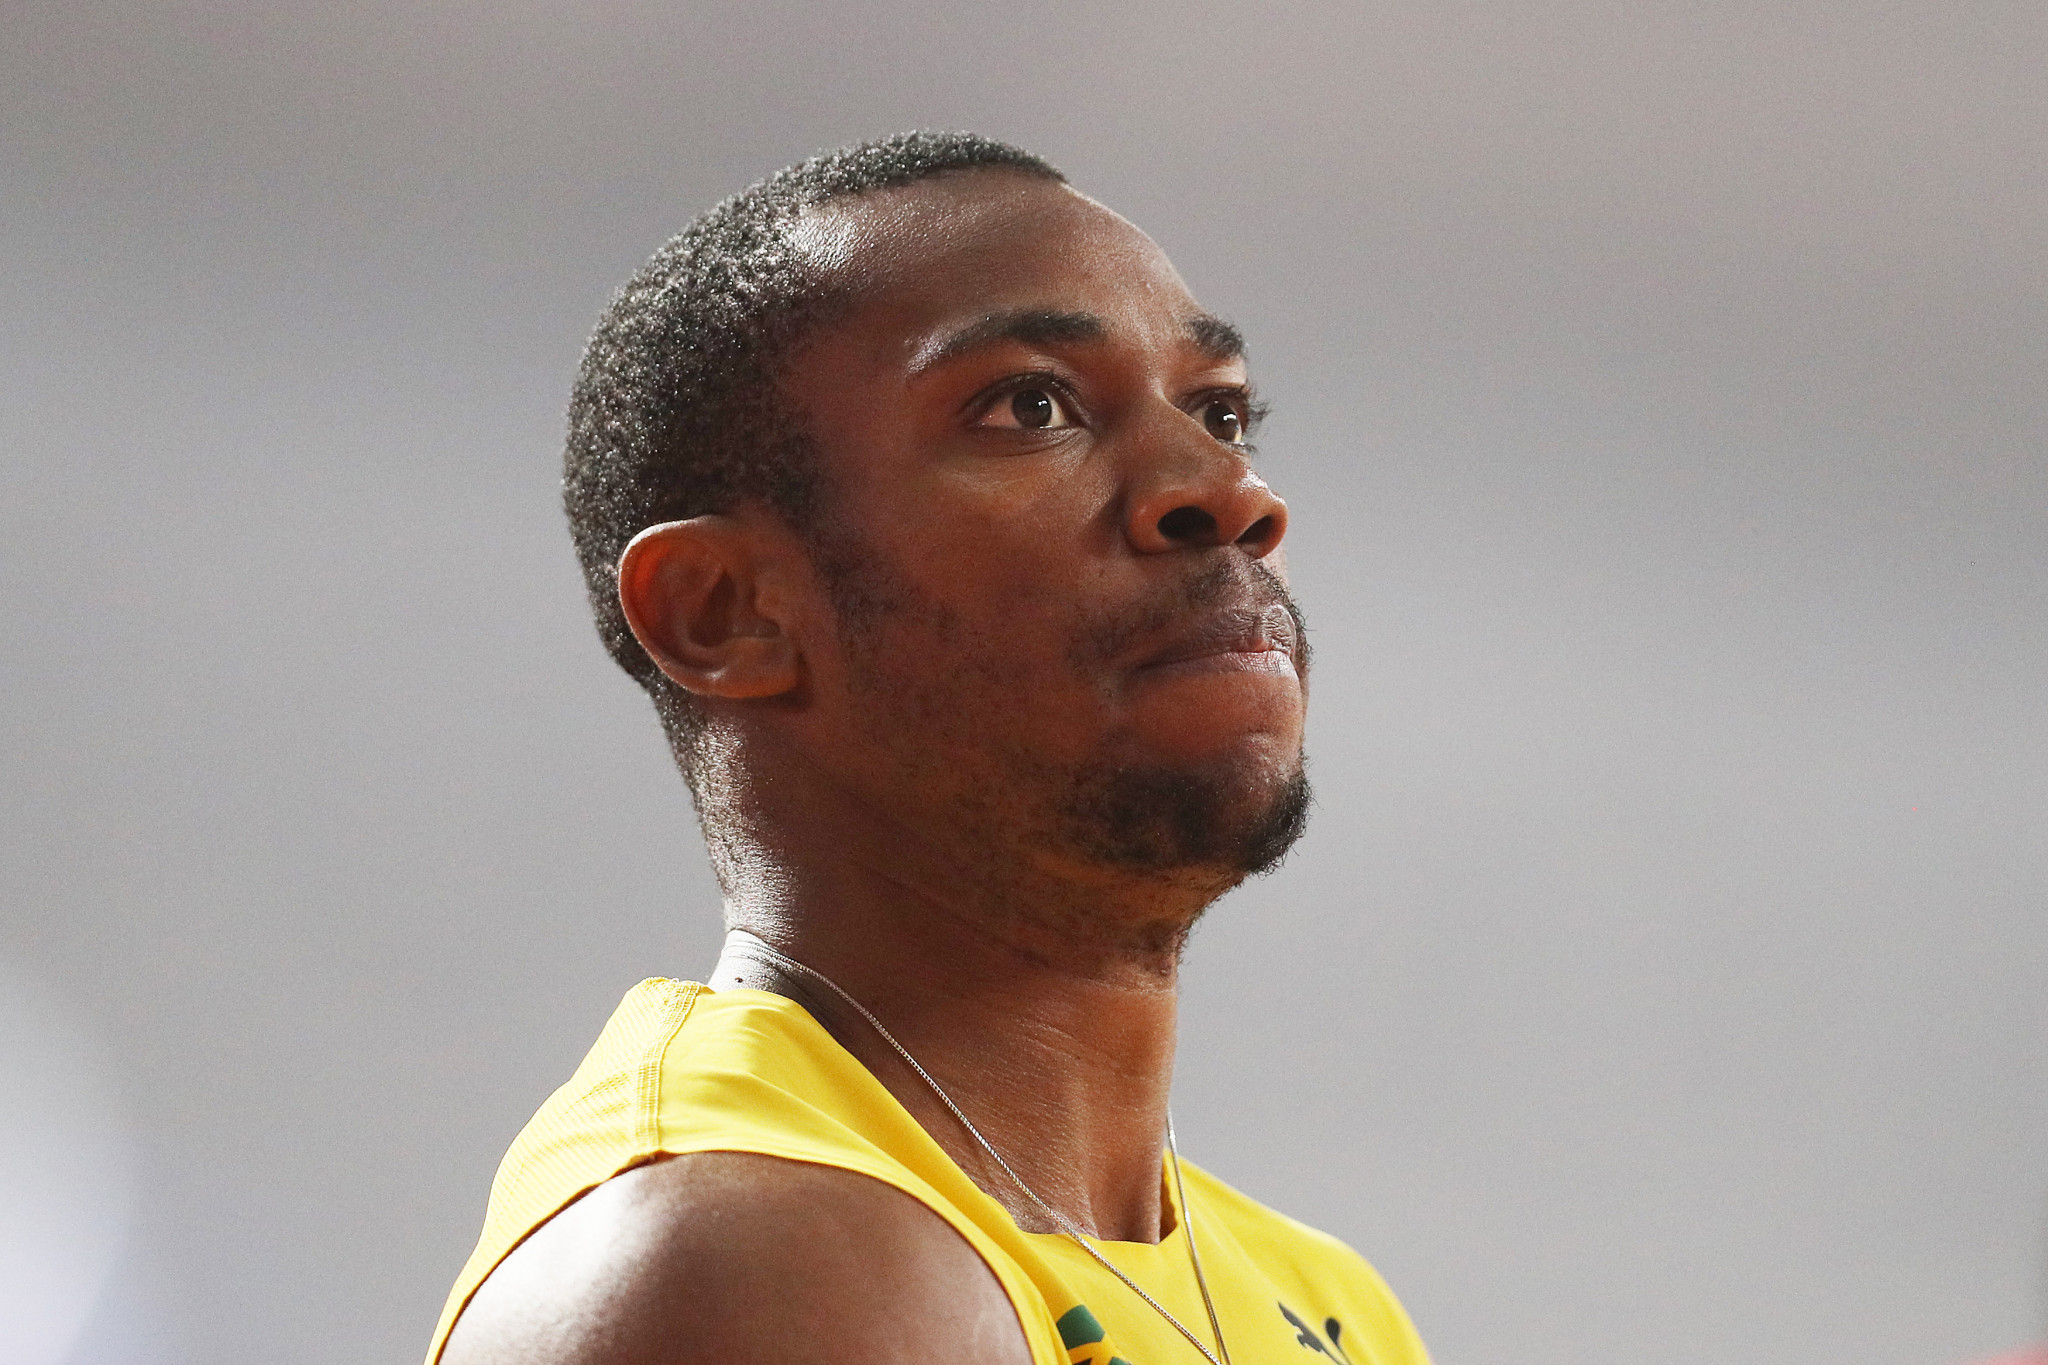 Yohan Blake has said he would rather miss Tokyo 2020 receive the COVID-19 vaccine ©Getty Images